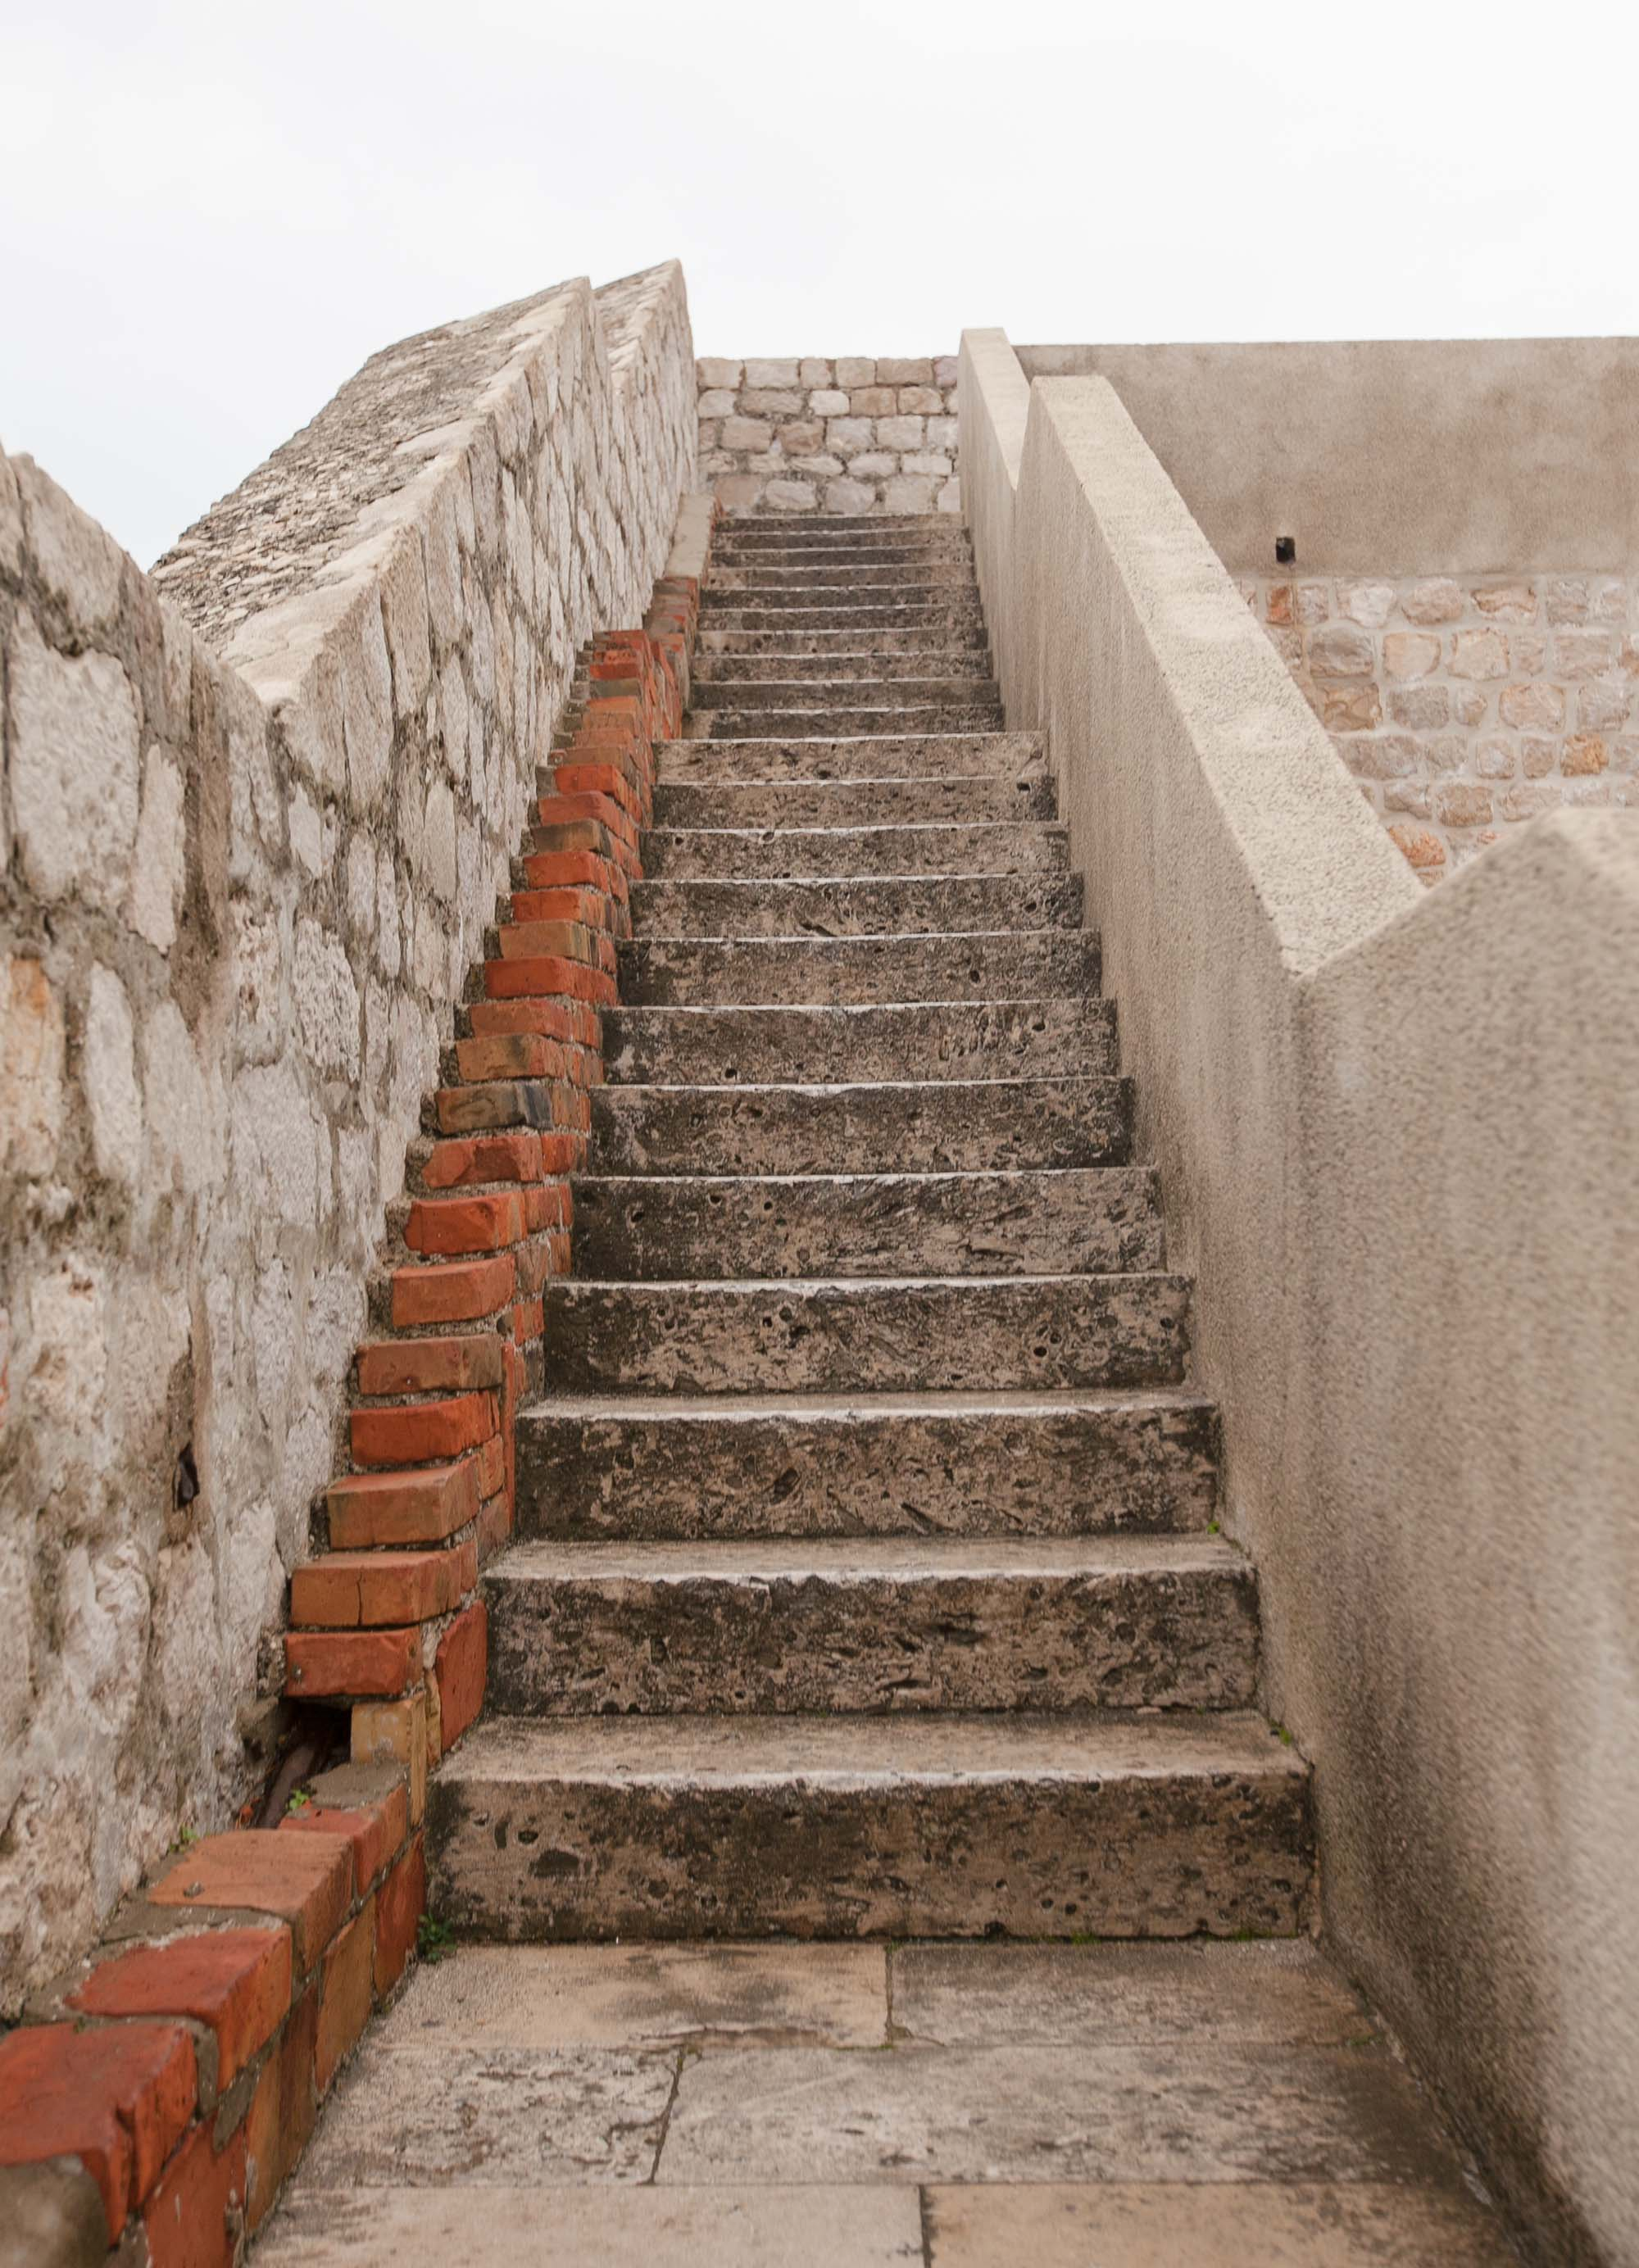 Dubrovnik battlement staircase